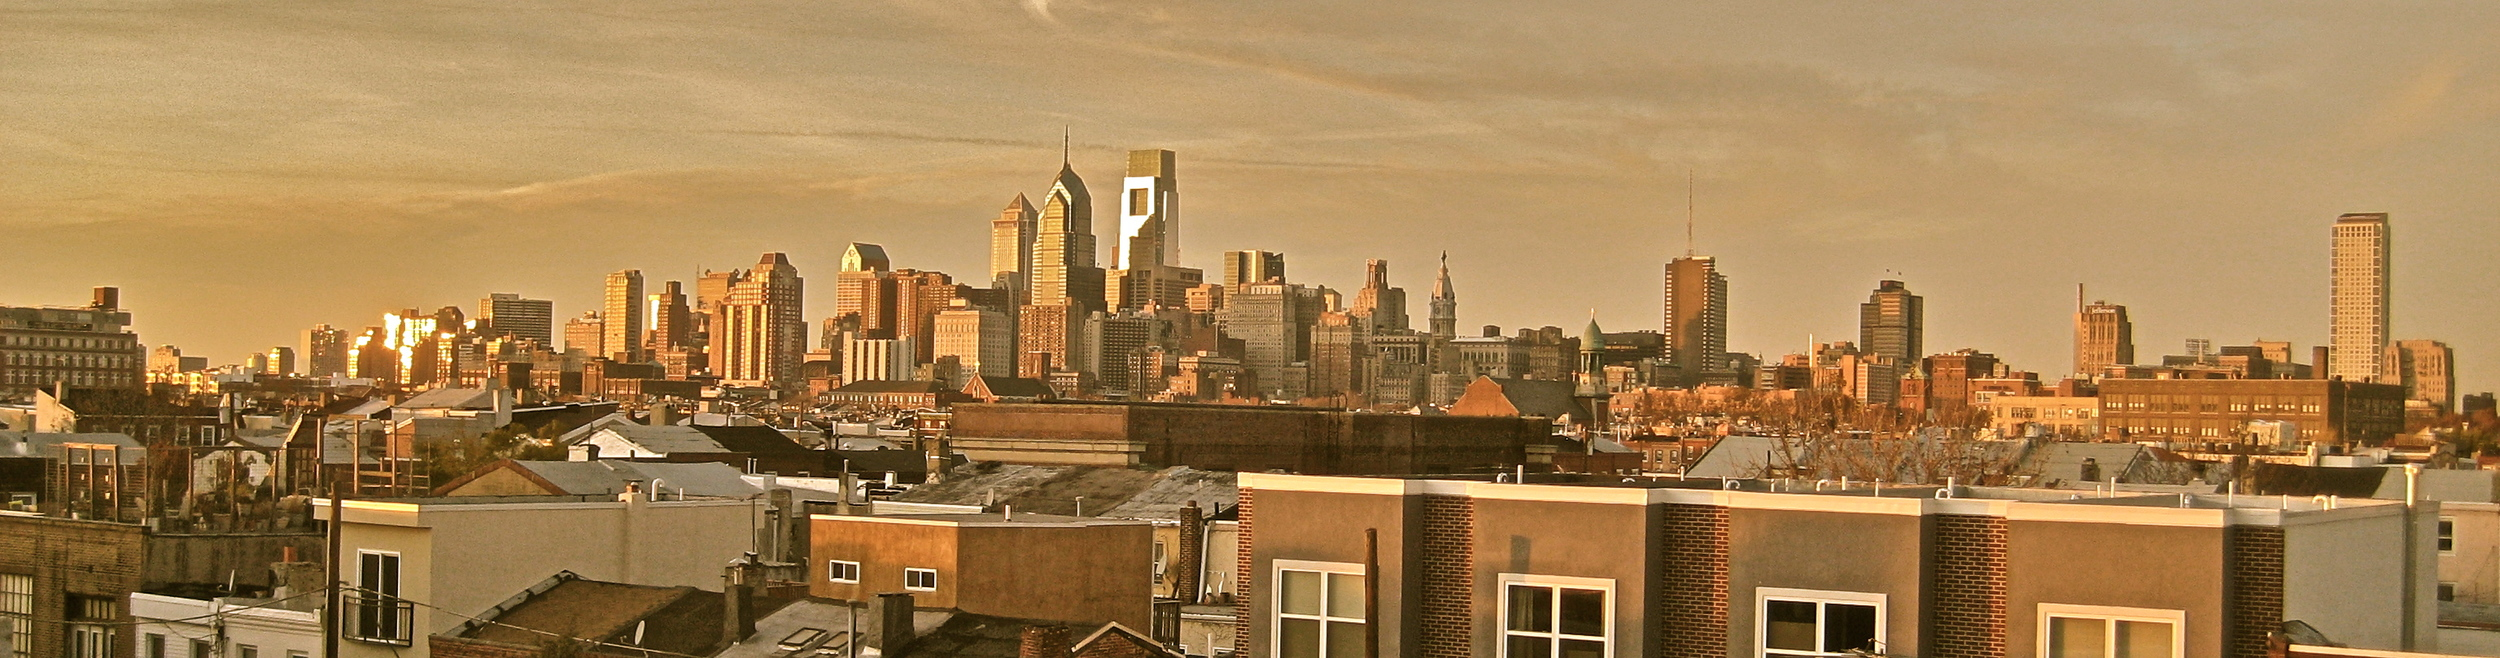 South Philadelphia. Home of Superior for over 65-years.